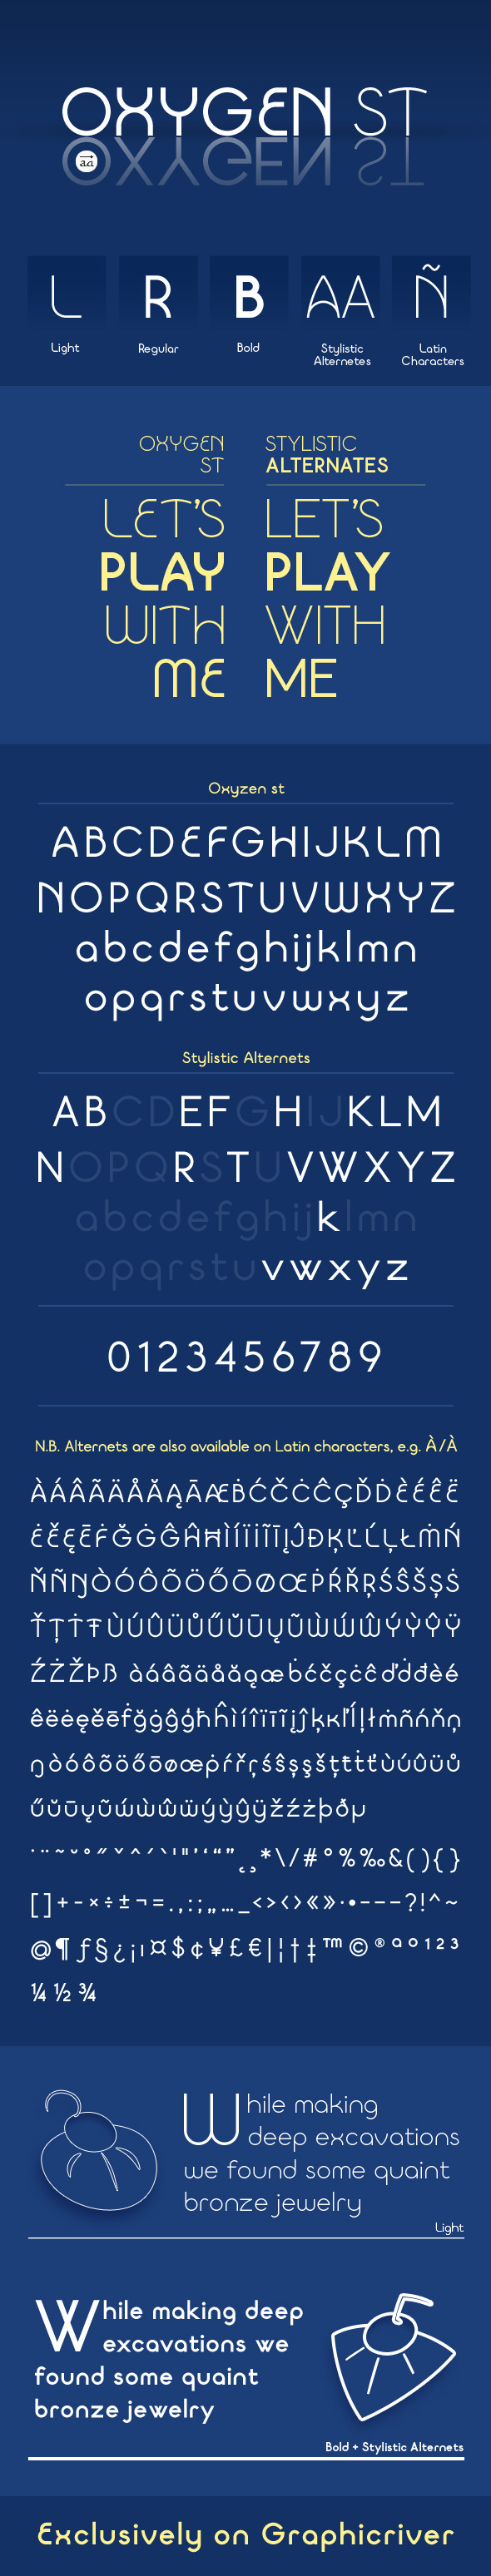 GraphicRiver Oxygen st typeface 10938562